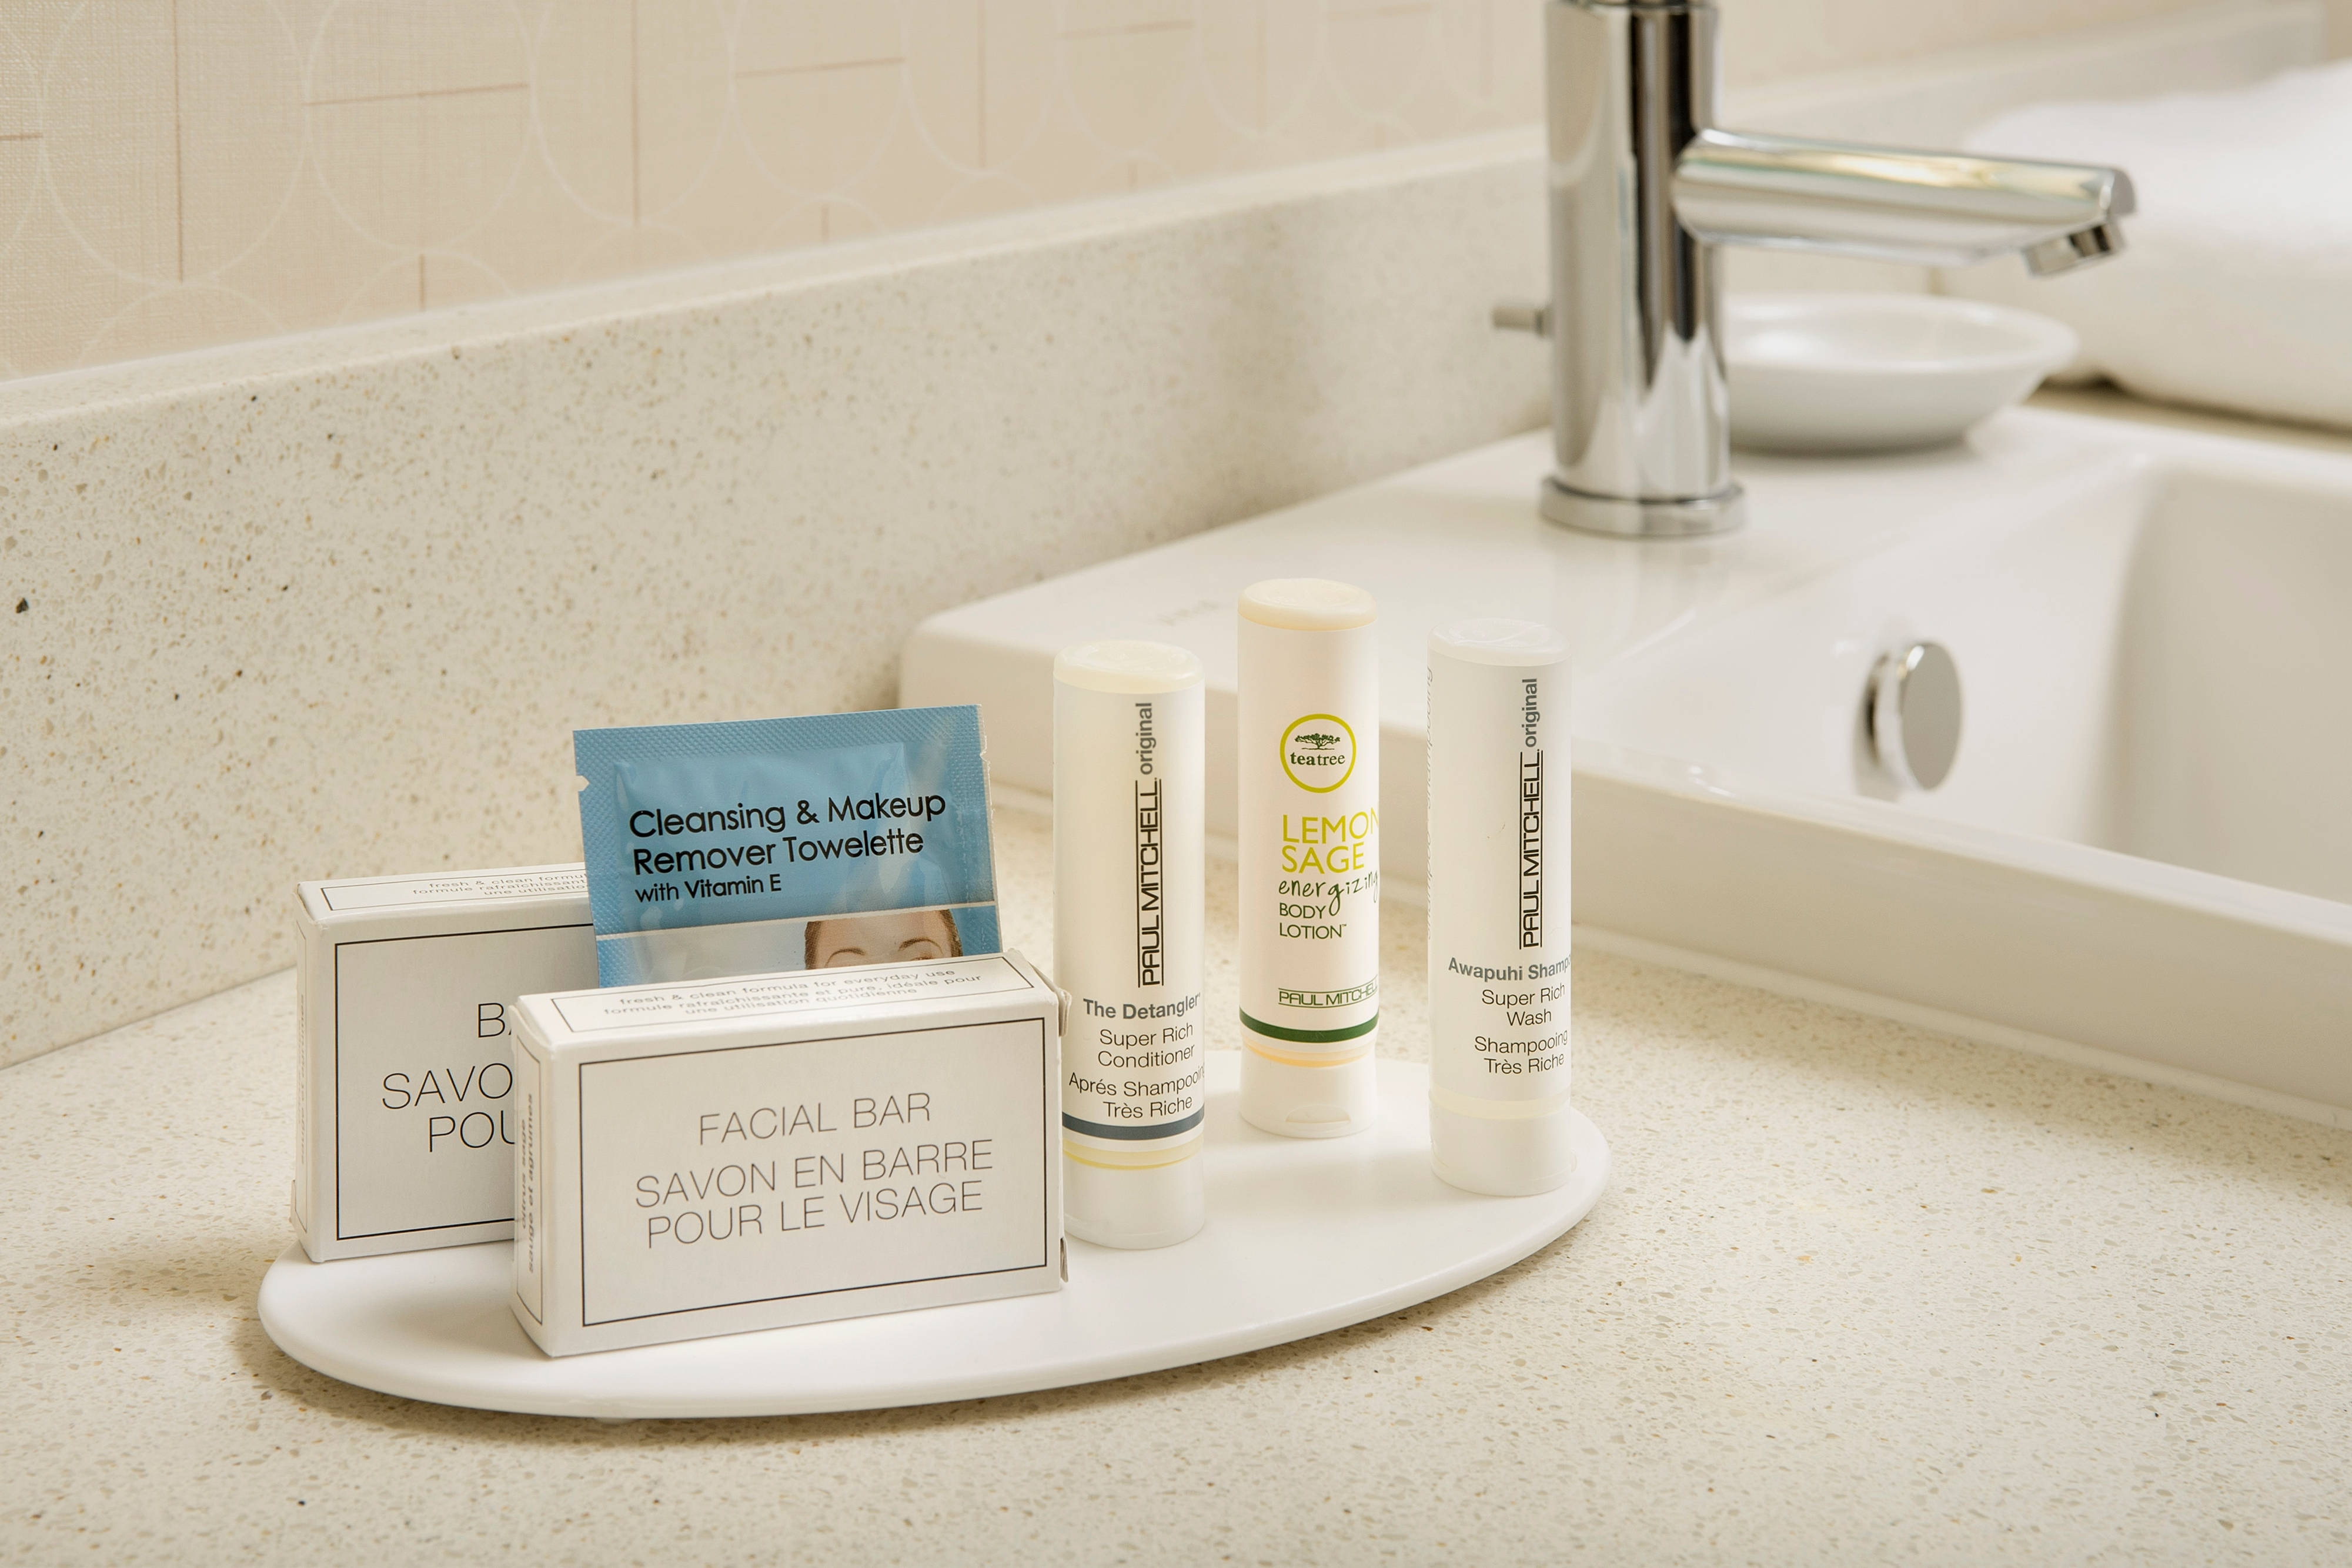 SpringHill Suites Bathroom Amenities